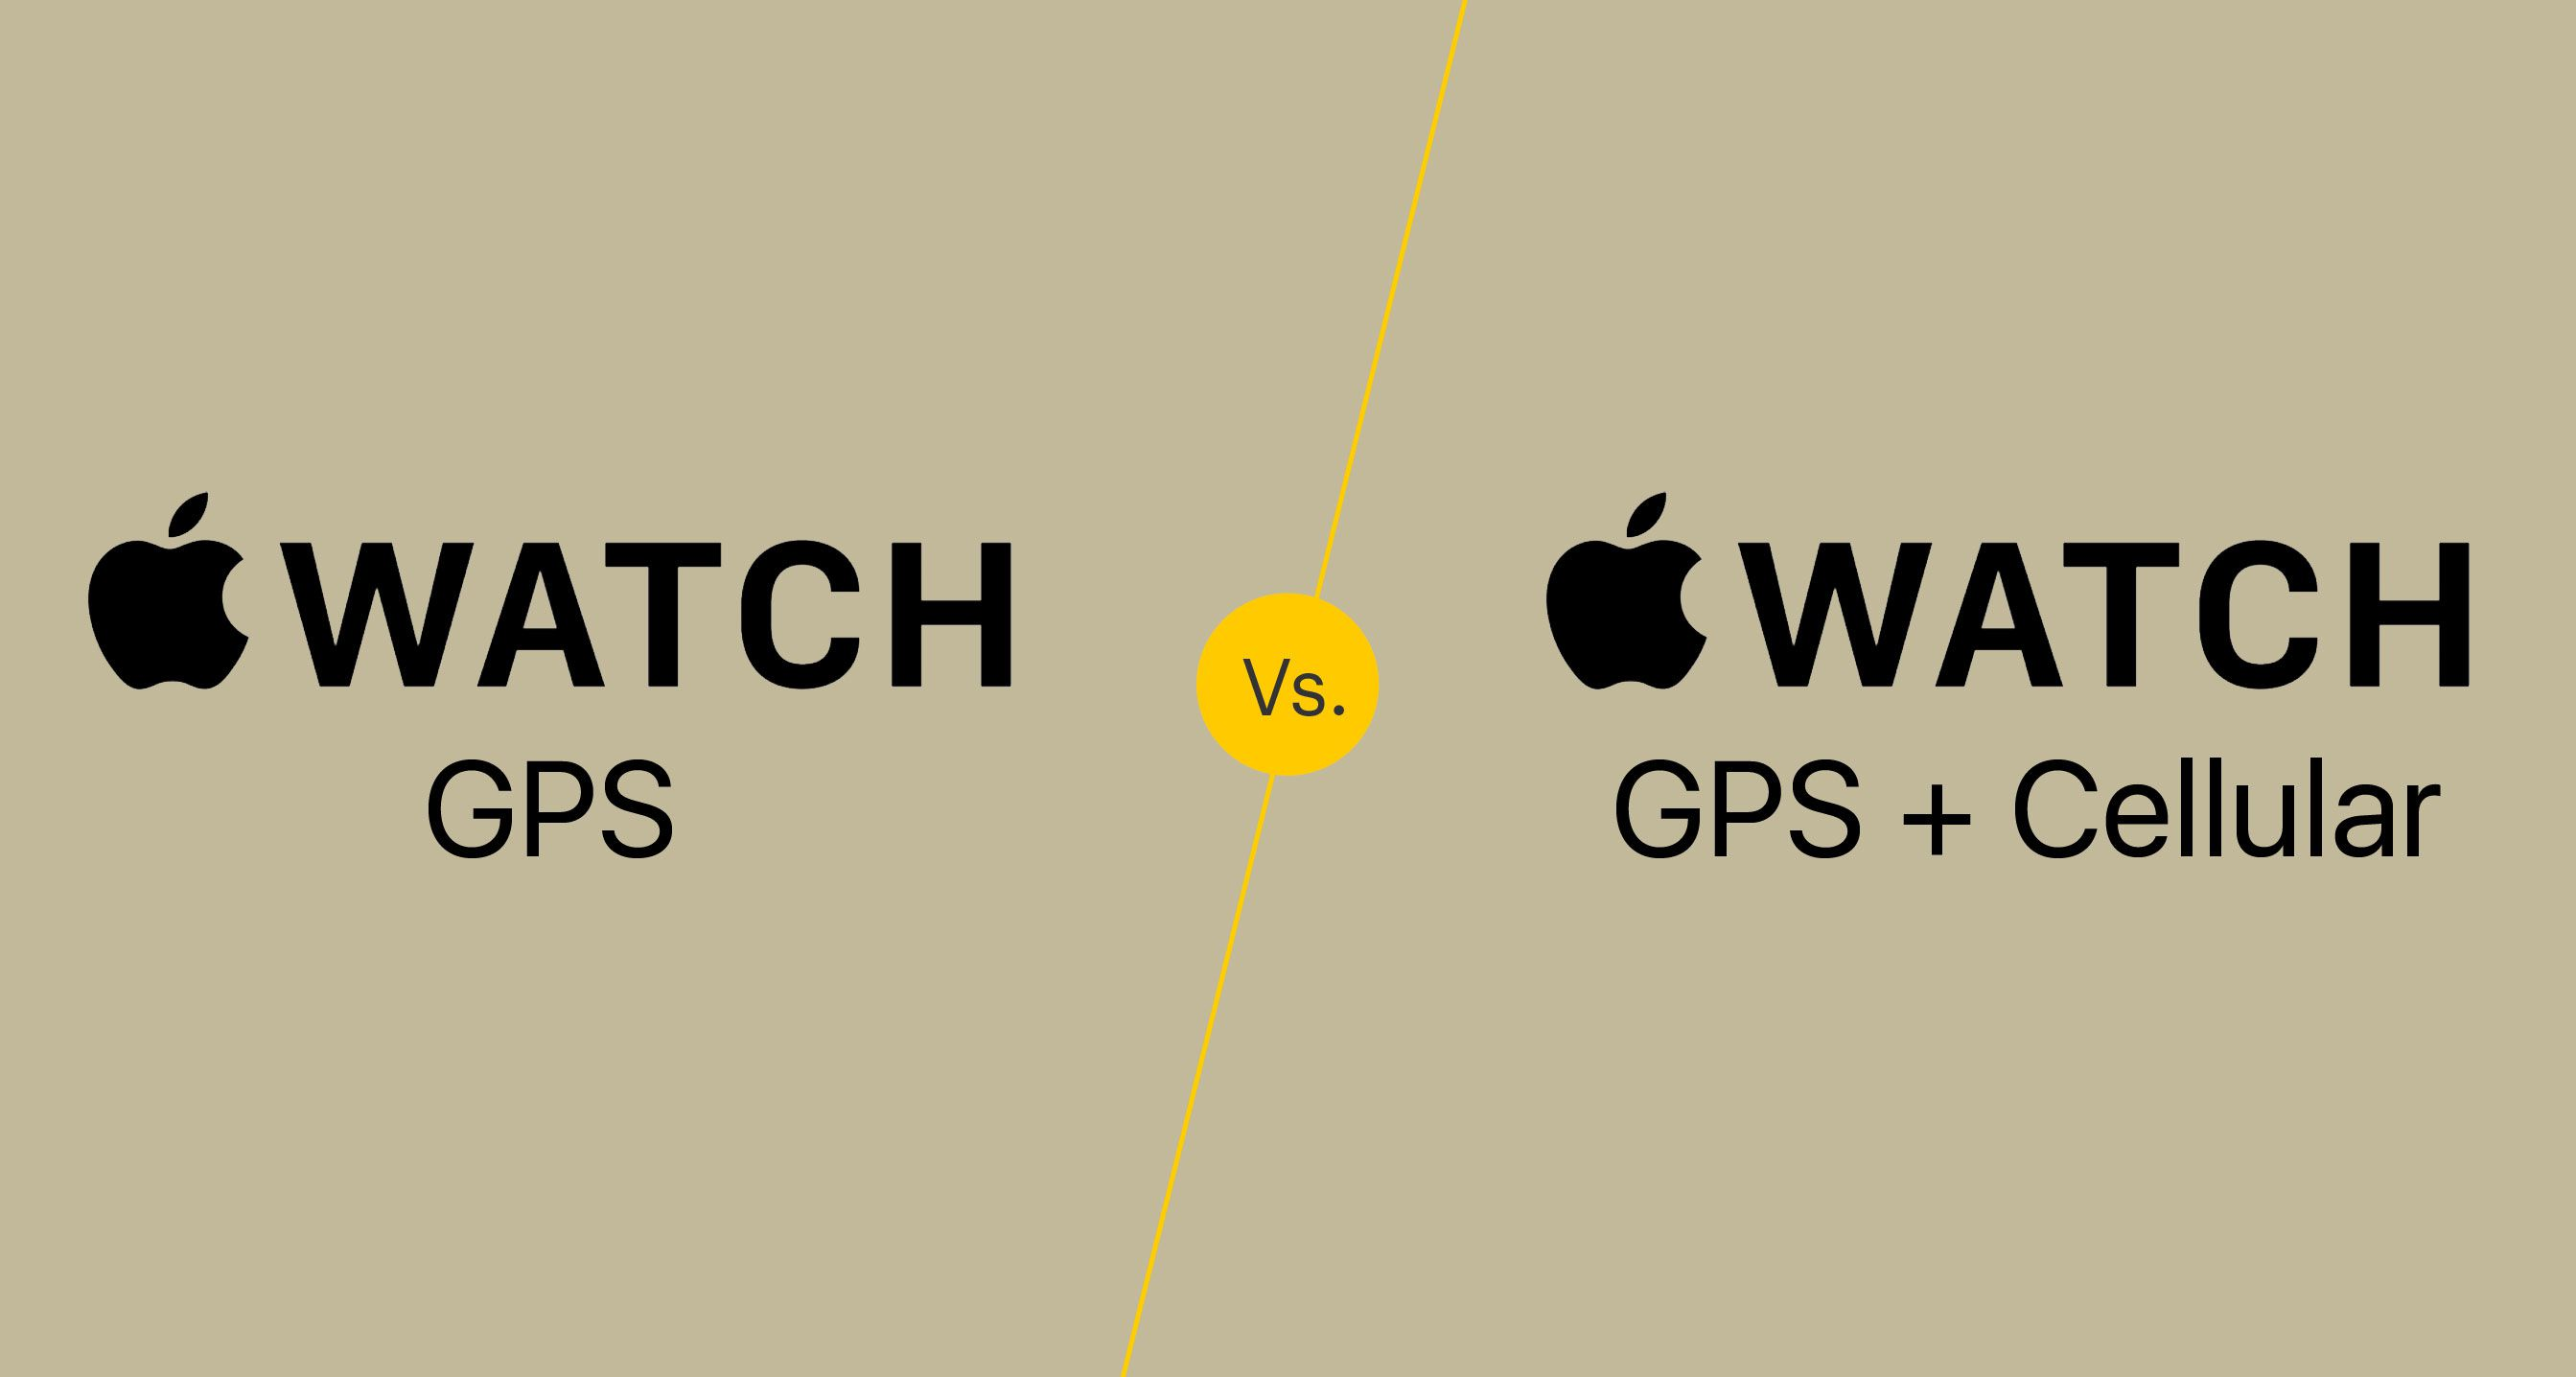 Apple Watch GPS vs. Cellular Apple Watch: Which One Is Better?